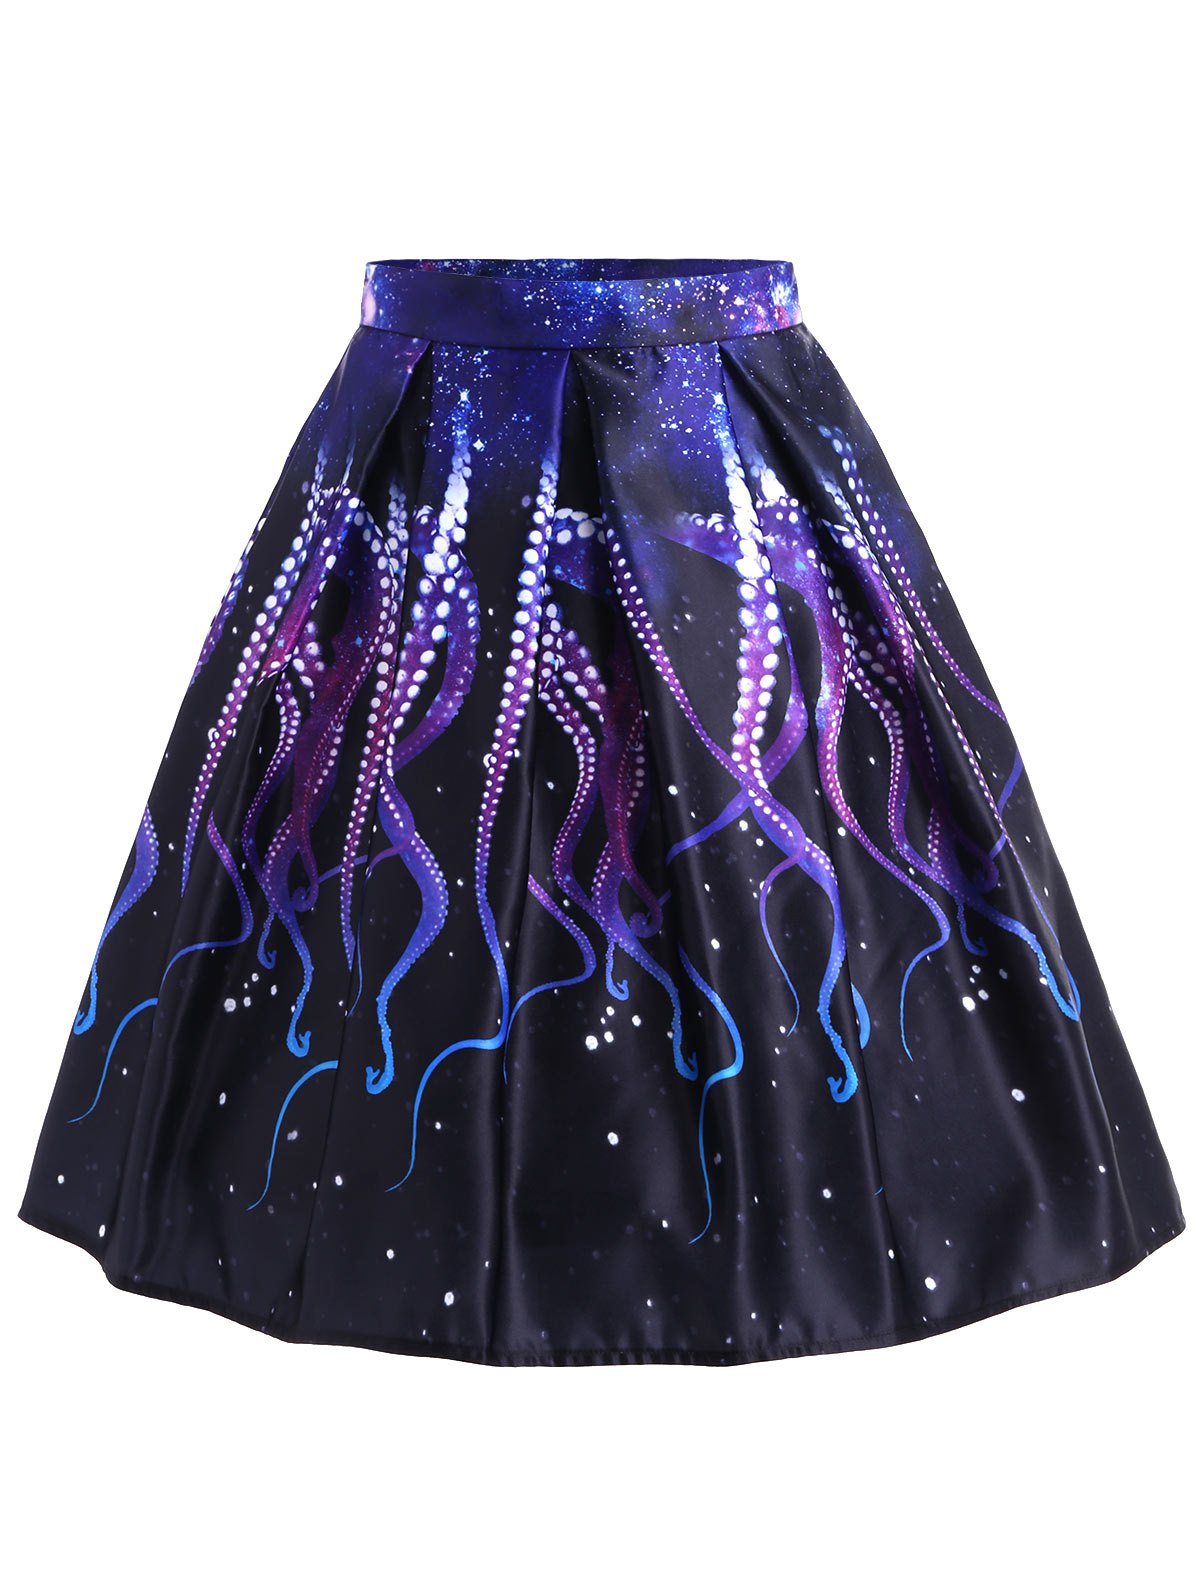 Octopus Claw A-line Skirt - BLACK XL